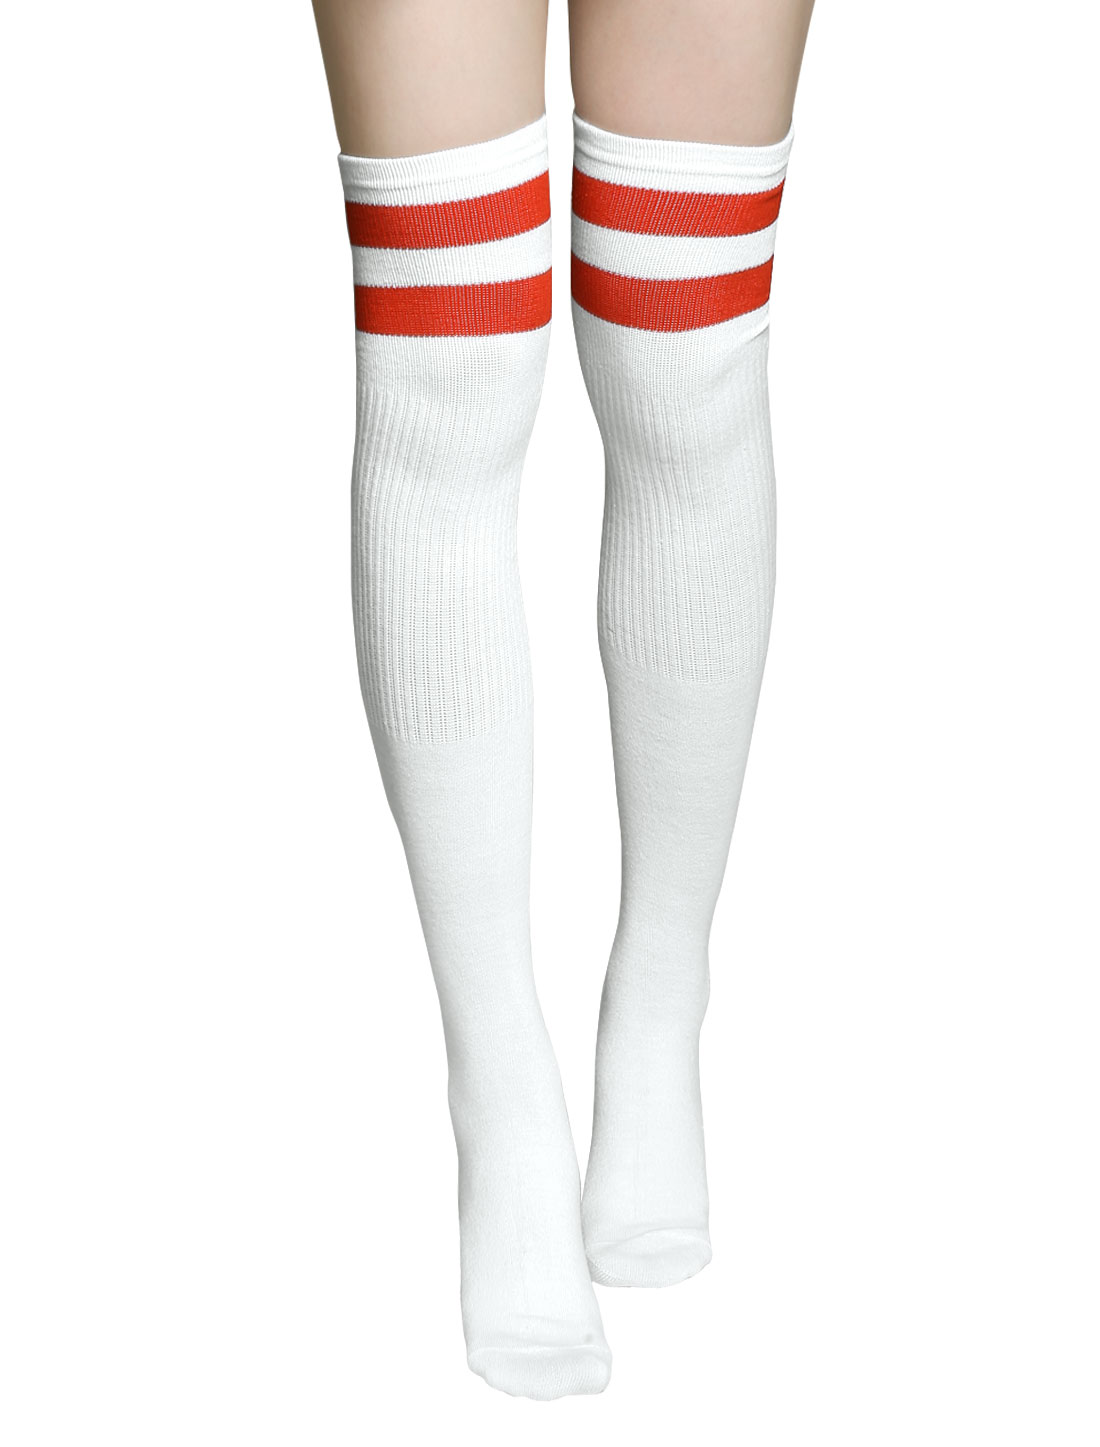 Unisex Knee High Ribbed Stripes Football Socks Pair White